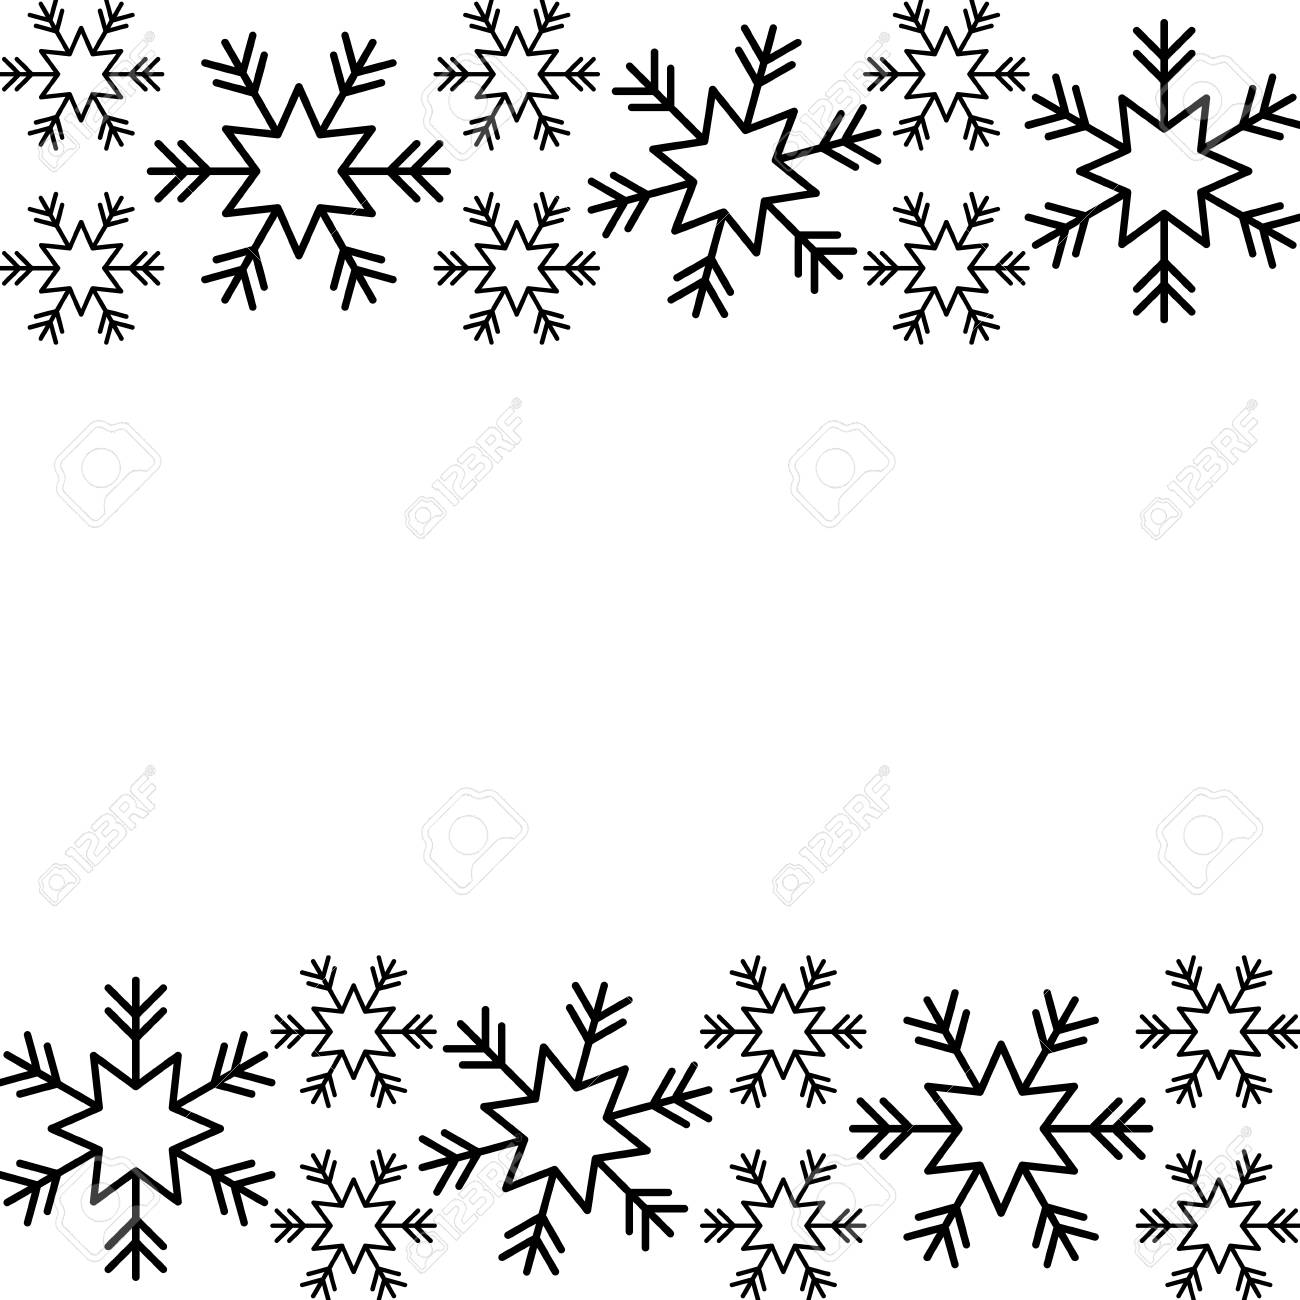 Christmas Border Black And White.Christmas Border Snowflake Winter Design Background Vector Illustration